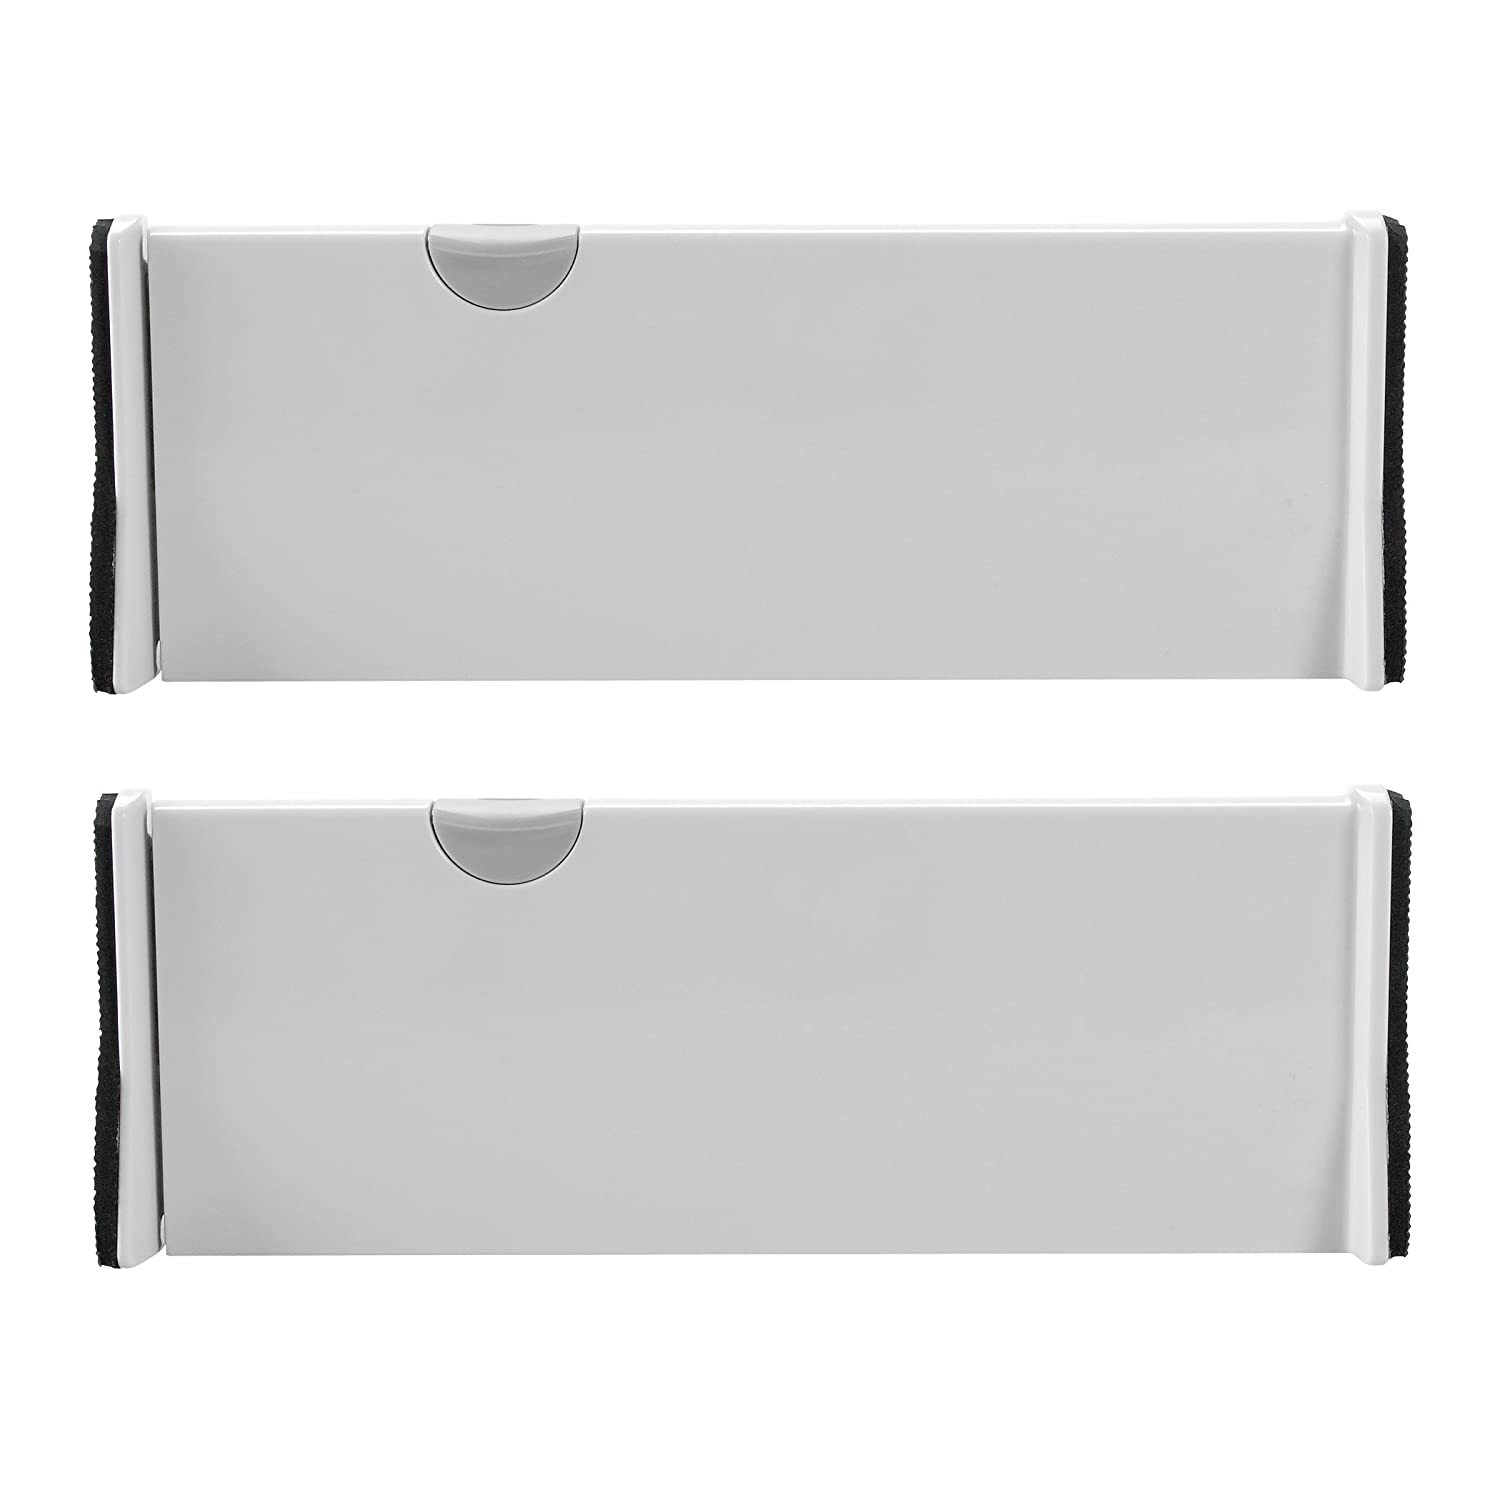 OXO Expandable Dresser Drawer Dividers 4-Inch, Pack of 2 - UPDATED VERSION AVAILABLE 1391200